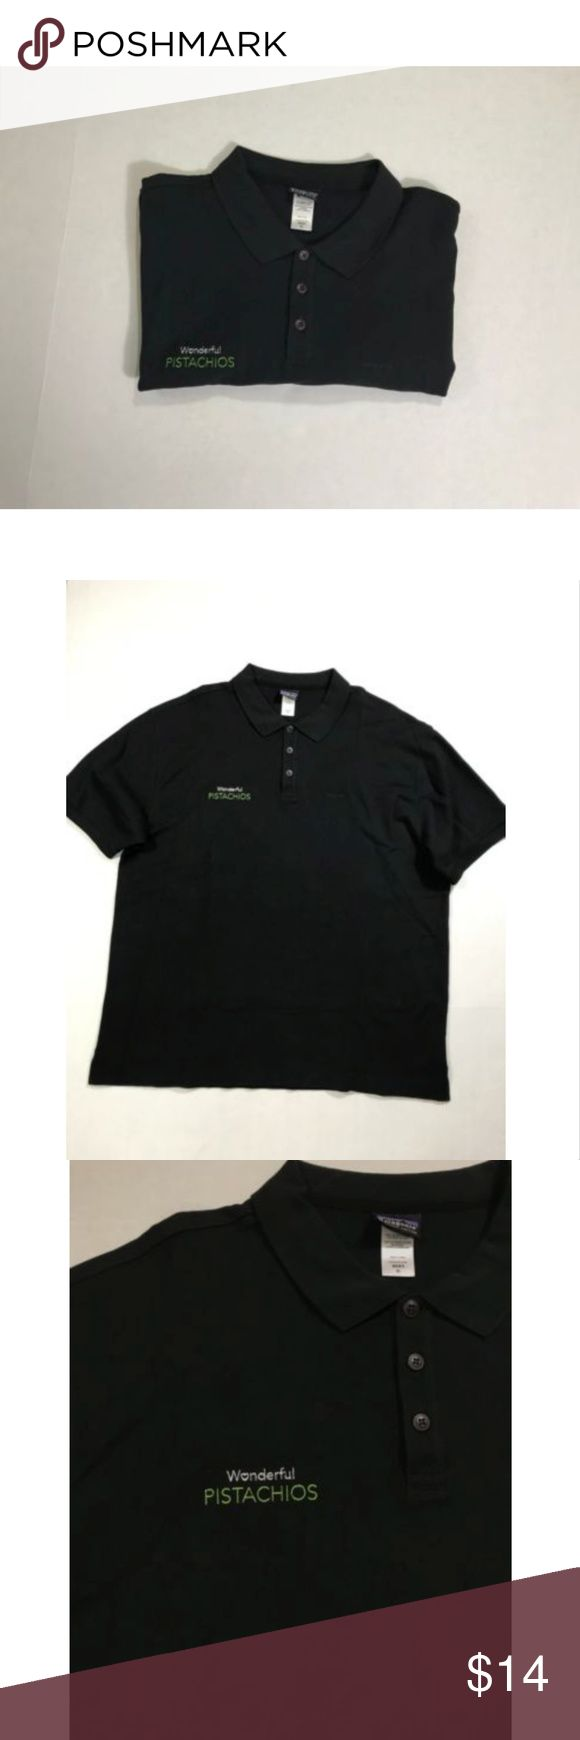 Patagonia Wonderful Pistachios Polo Shirt Men's XL Patagonia Wonderful Pistachios Polo Shirt Men's XL Black  Pre-owned, Good condition   Please see pictures for full details   Ships fast and safe patagonia Shirts Polos